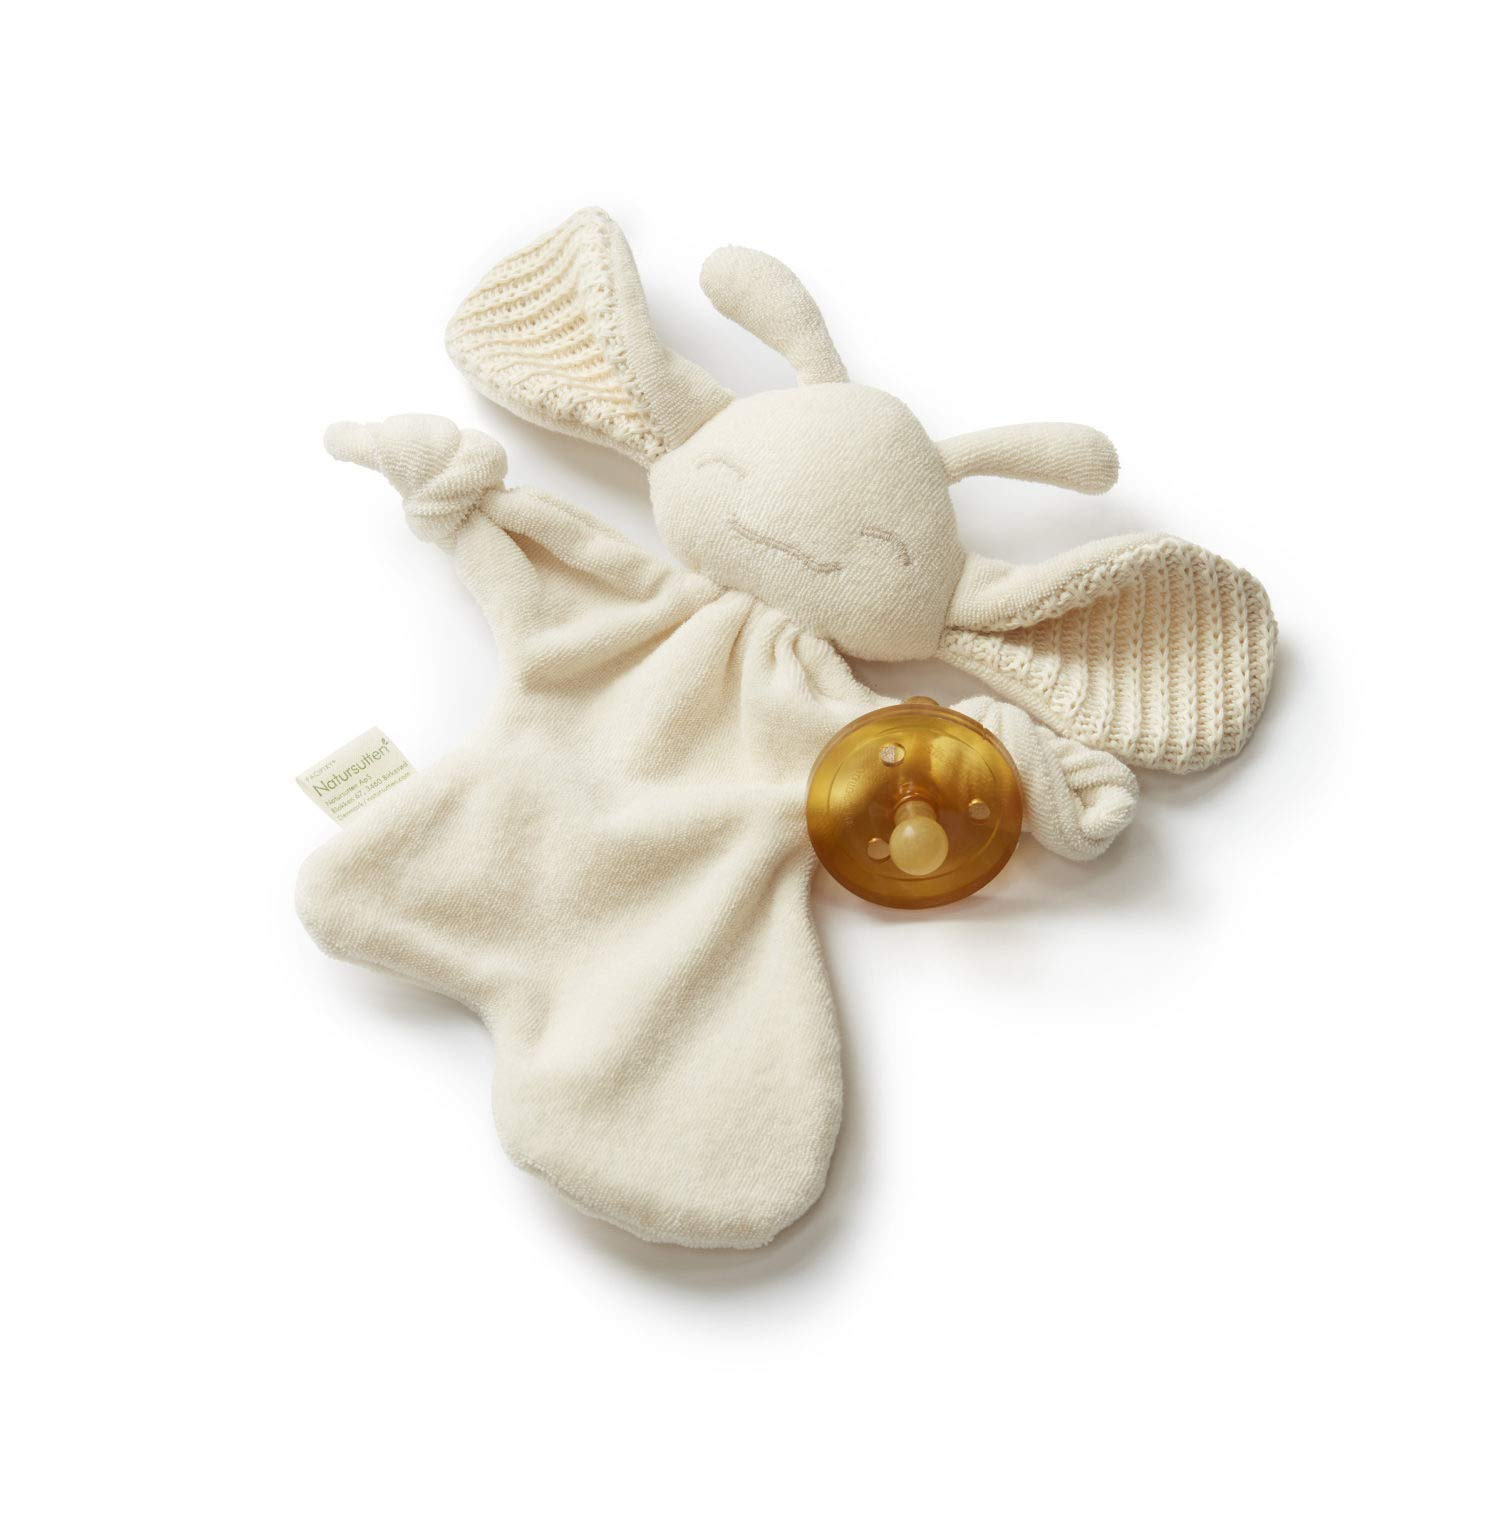 PaciPixy Organic Cotton, Soother Holder, Comforter, Lovey by Natursutten